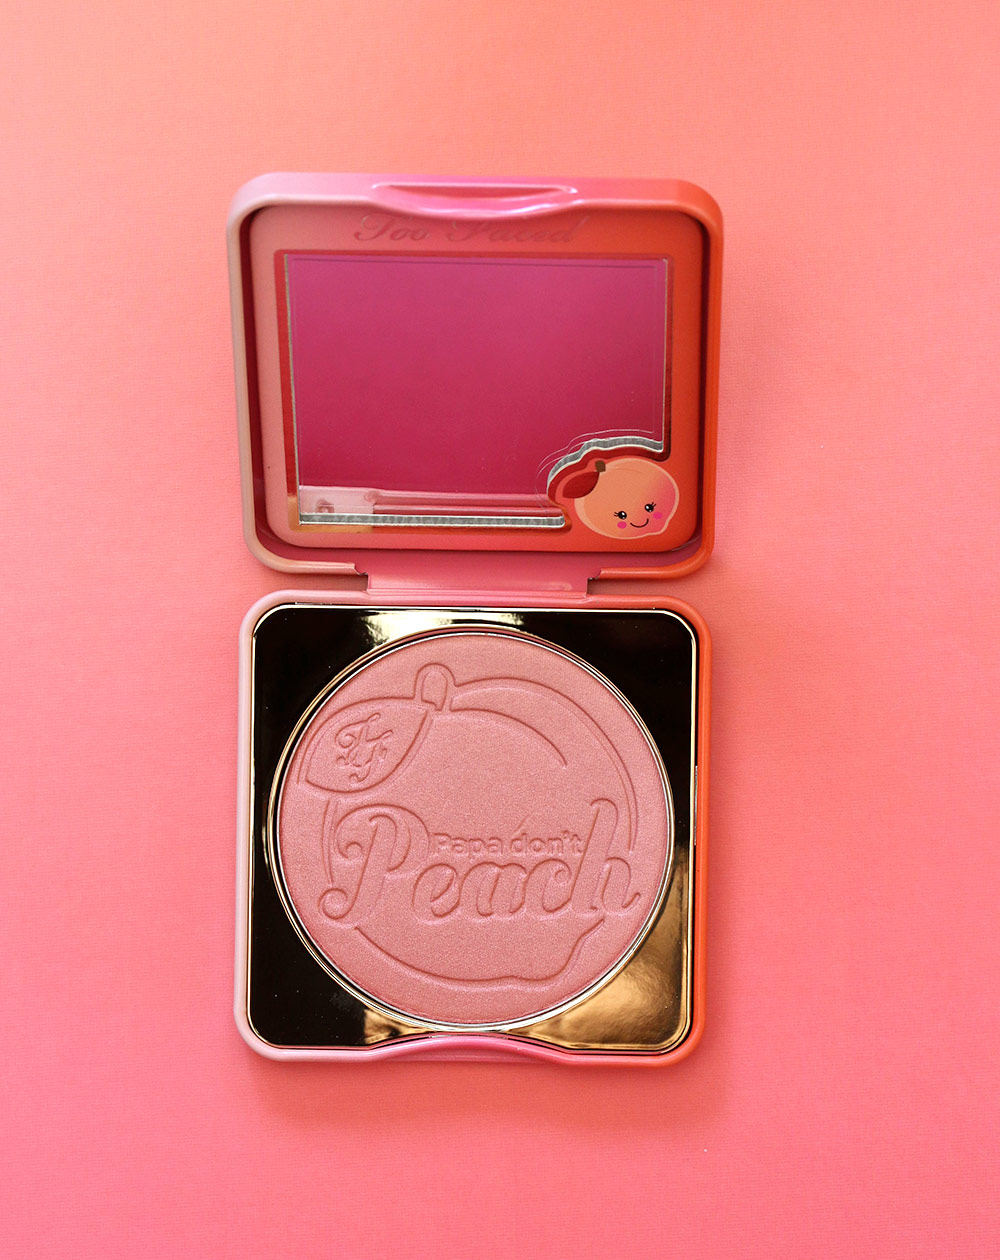 too faced papa dont peach blush